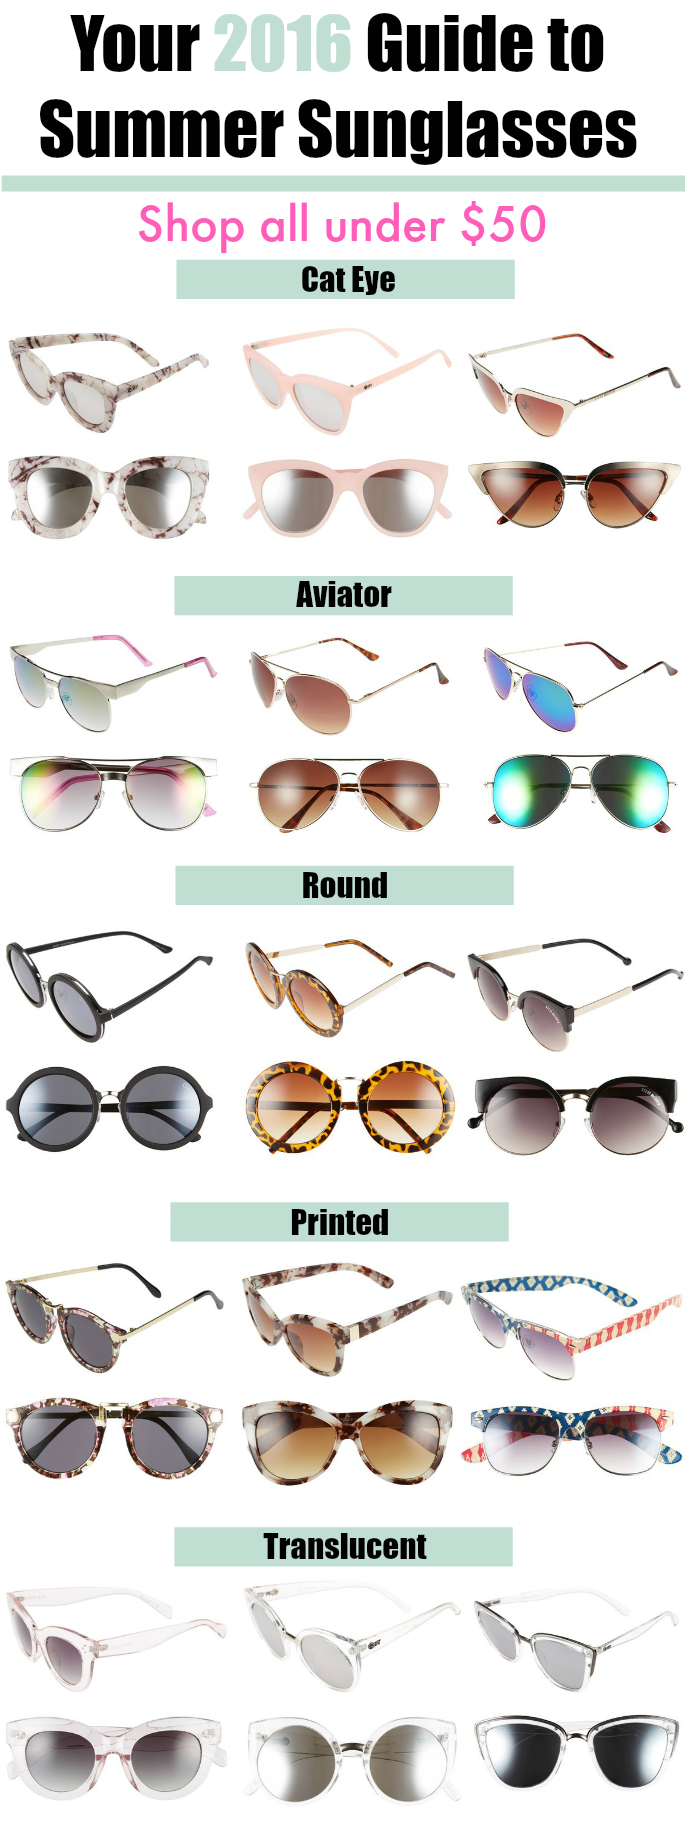 Your 2016 Guide To Summer Sunglasses via @southernflairblog | Cat Eye, Round Lens, Aviator, Translucent, and Printed Rims perfect for this summer!